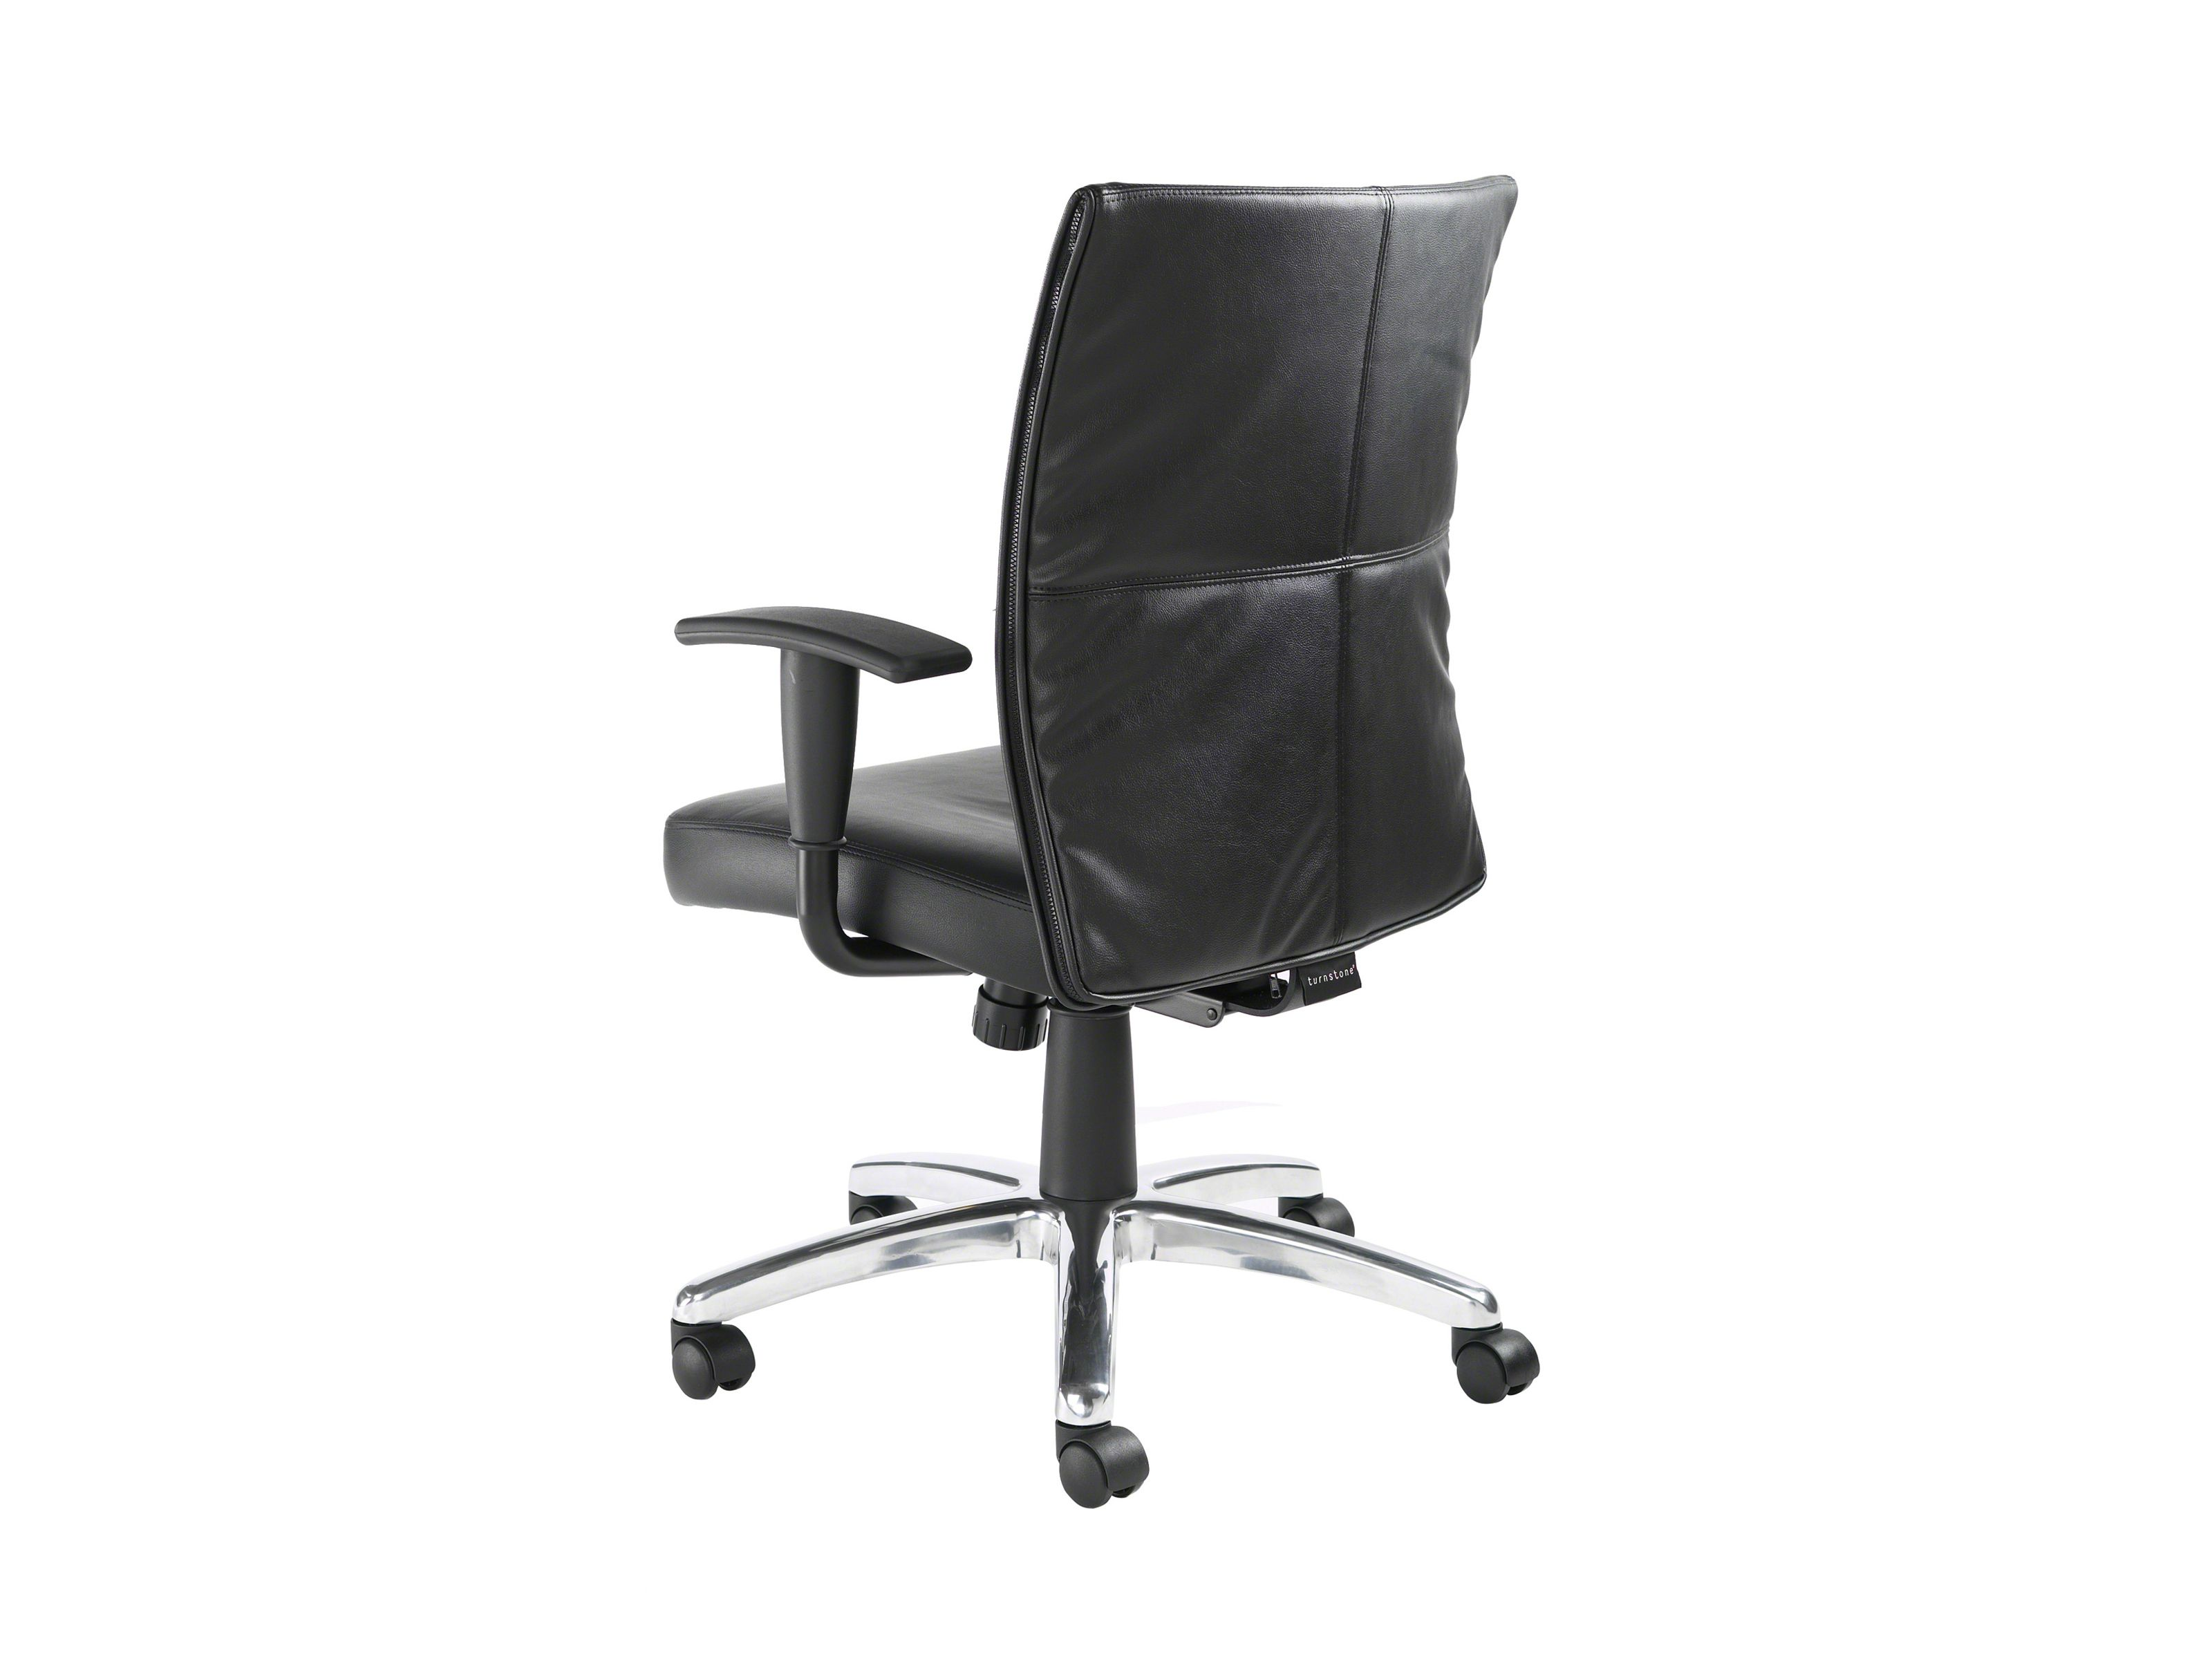 Jacket Office Chairs & Desk Seating Steelcase